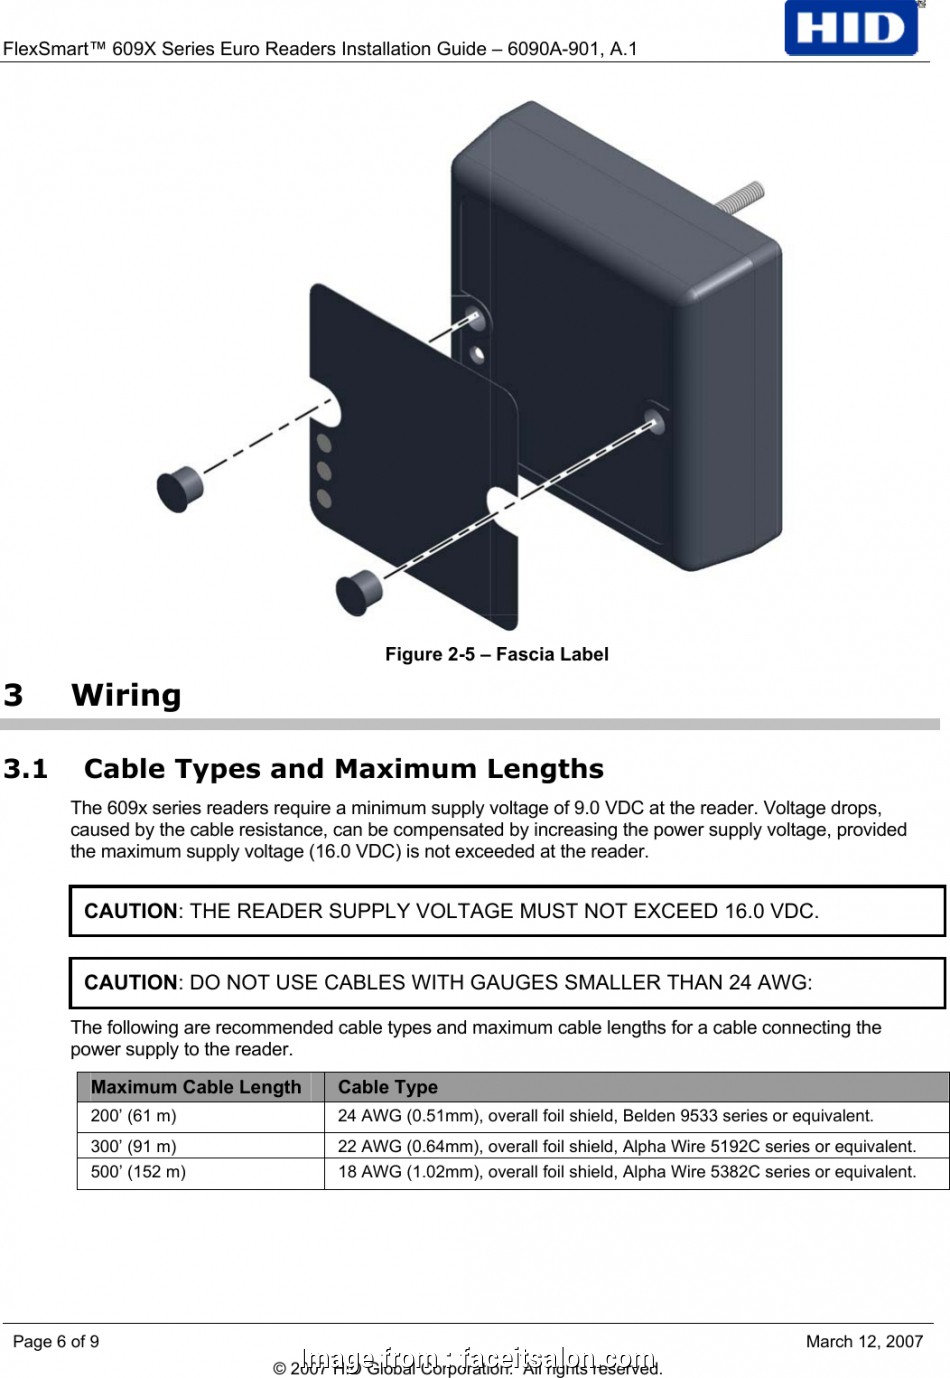 Hid Reader Wiring Diagram from tonetastic.info